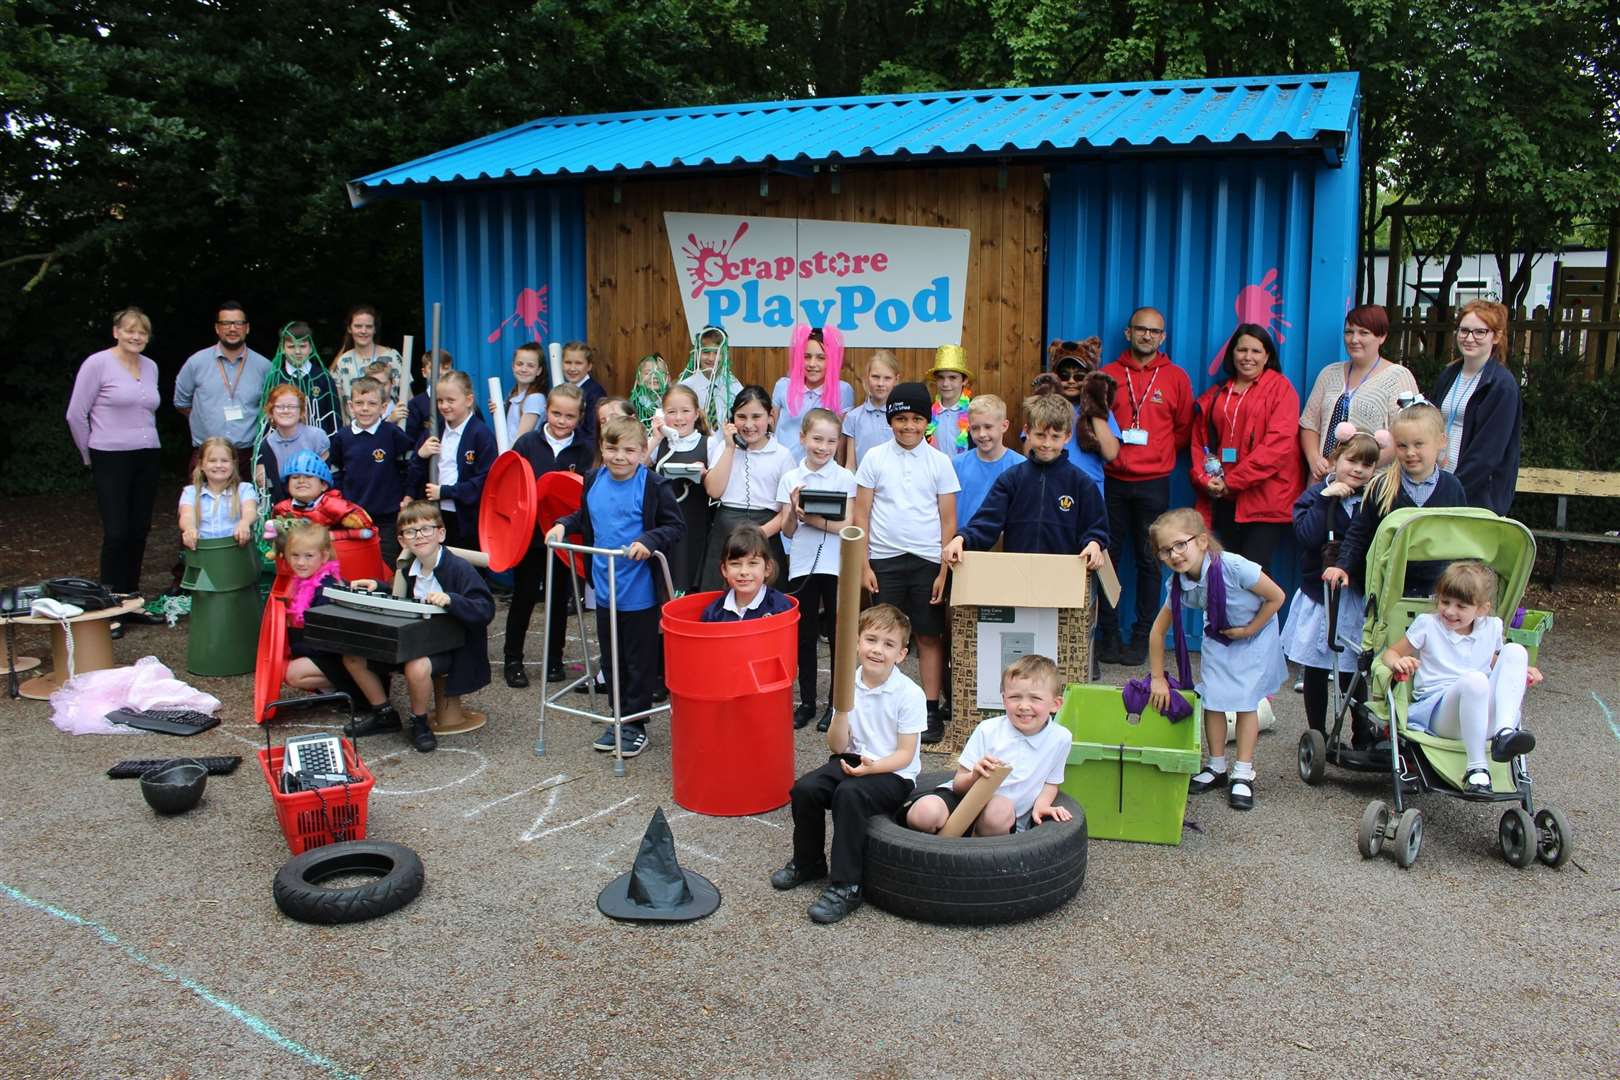 The Scrapstore PlayPod in use at Coupals Primary Academy. Picture by Gooderham PR